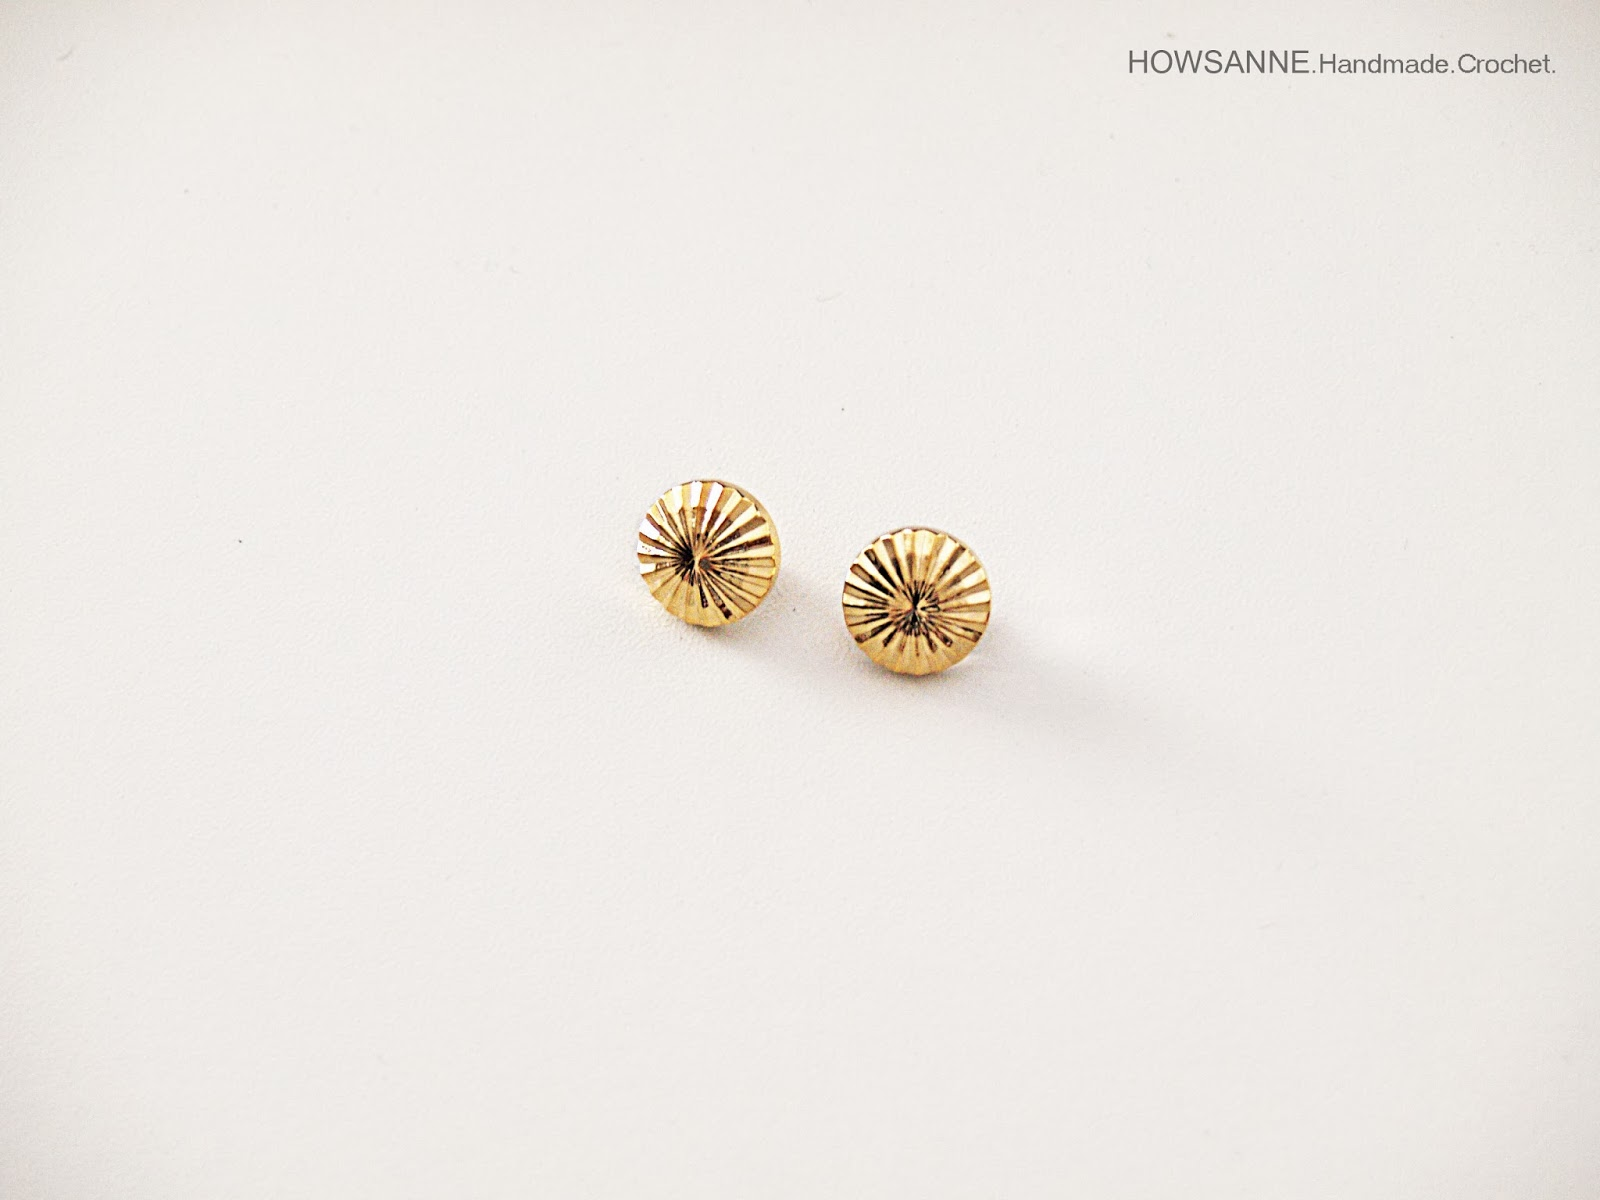 Sewing accessories gold button